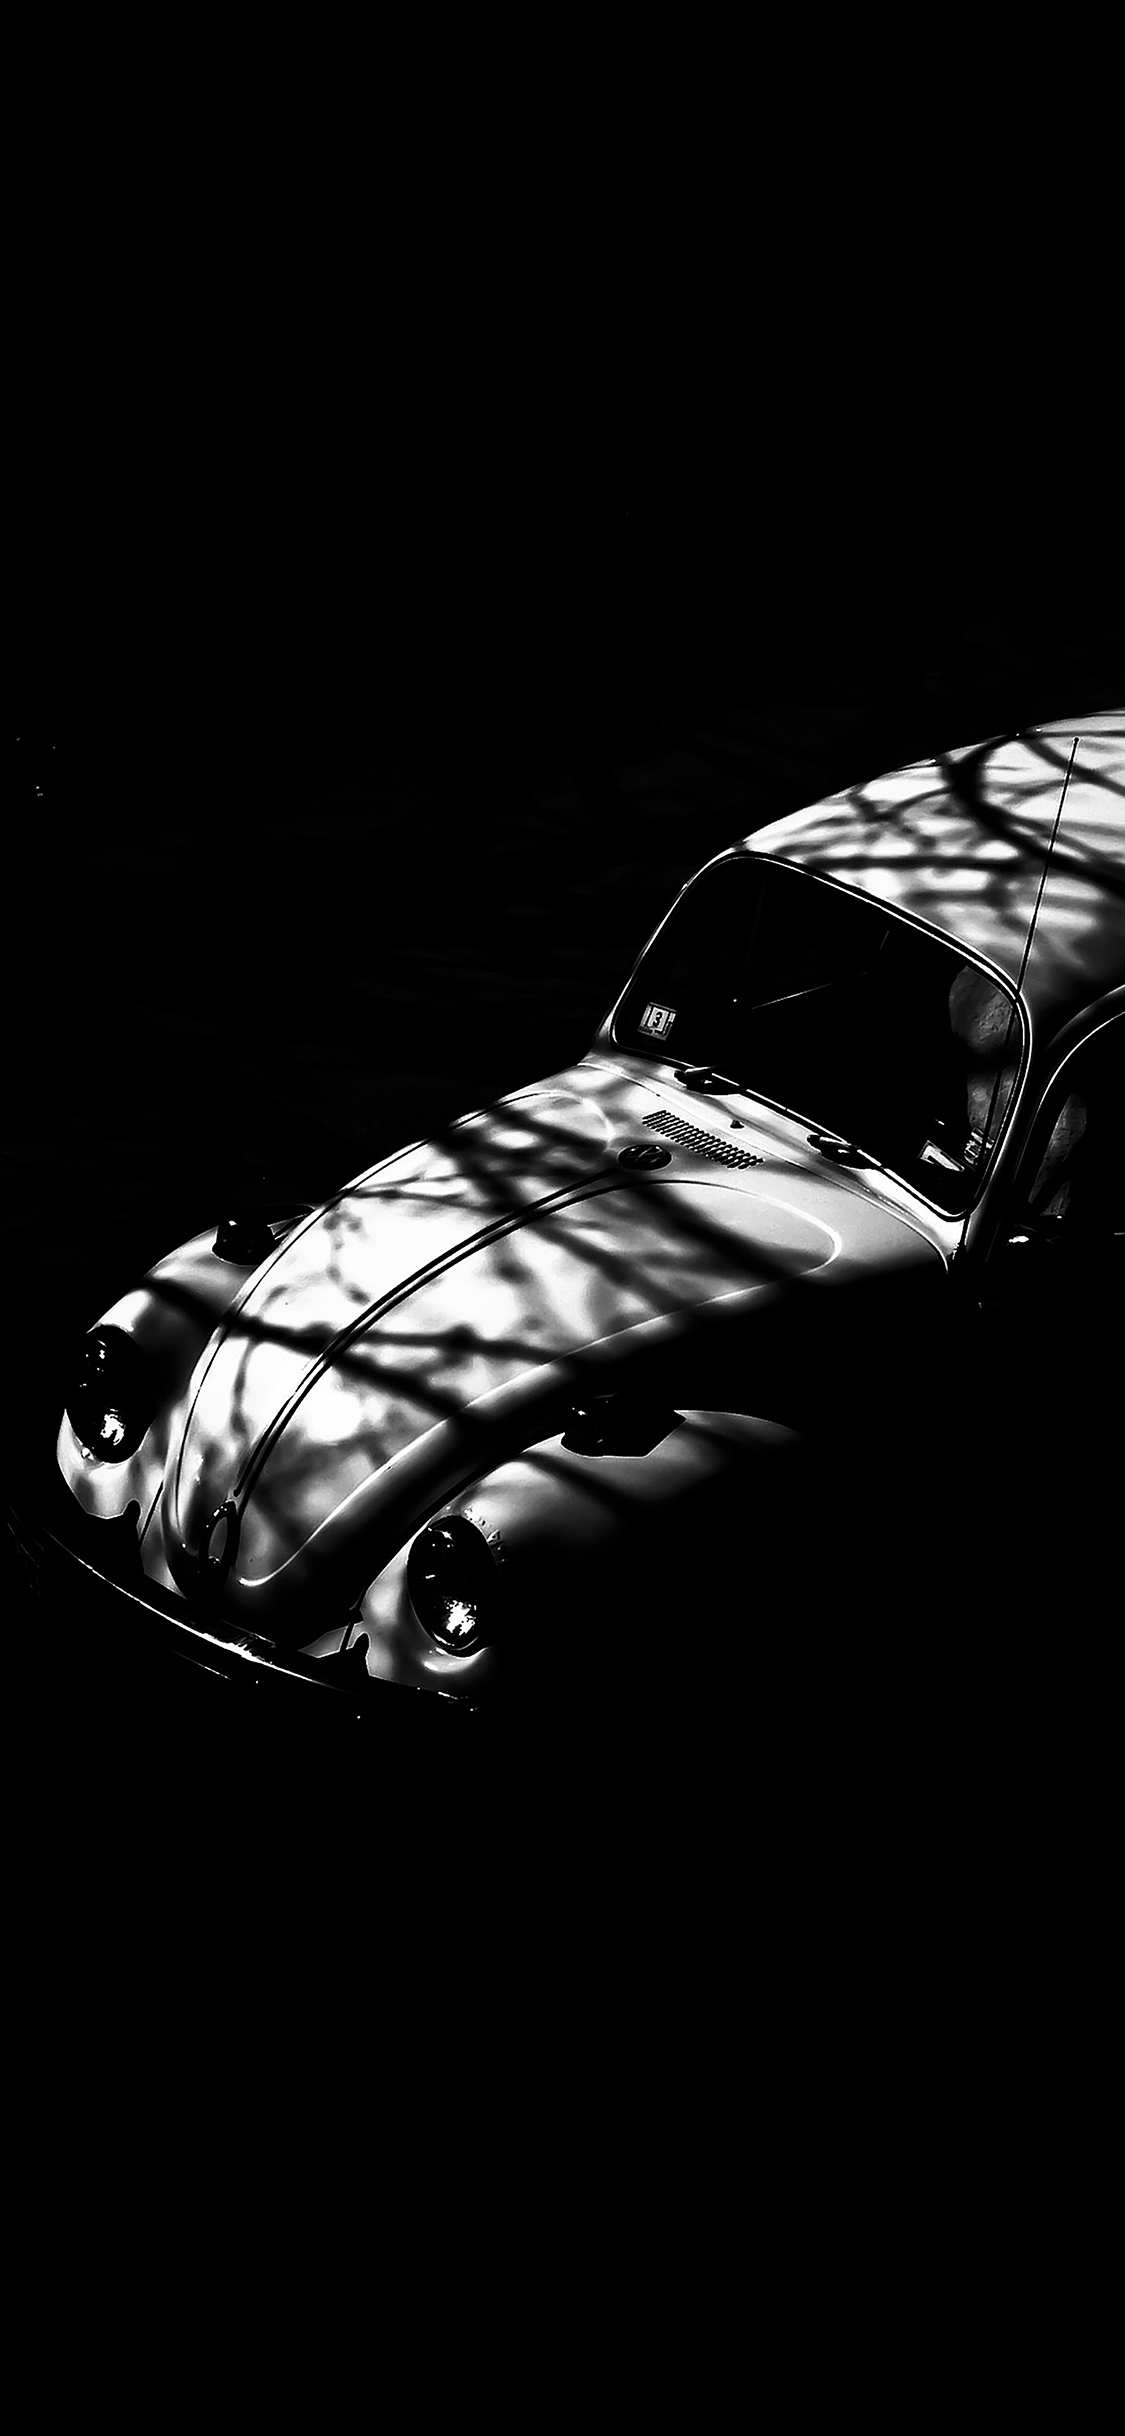 iPhoneXpapers.com-Apple-iPhone-wallpaper-ab38-wallpaper-14h-car-in-shadow